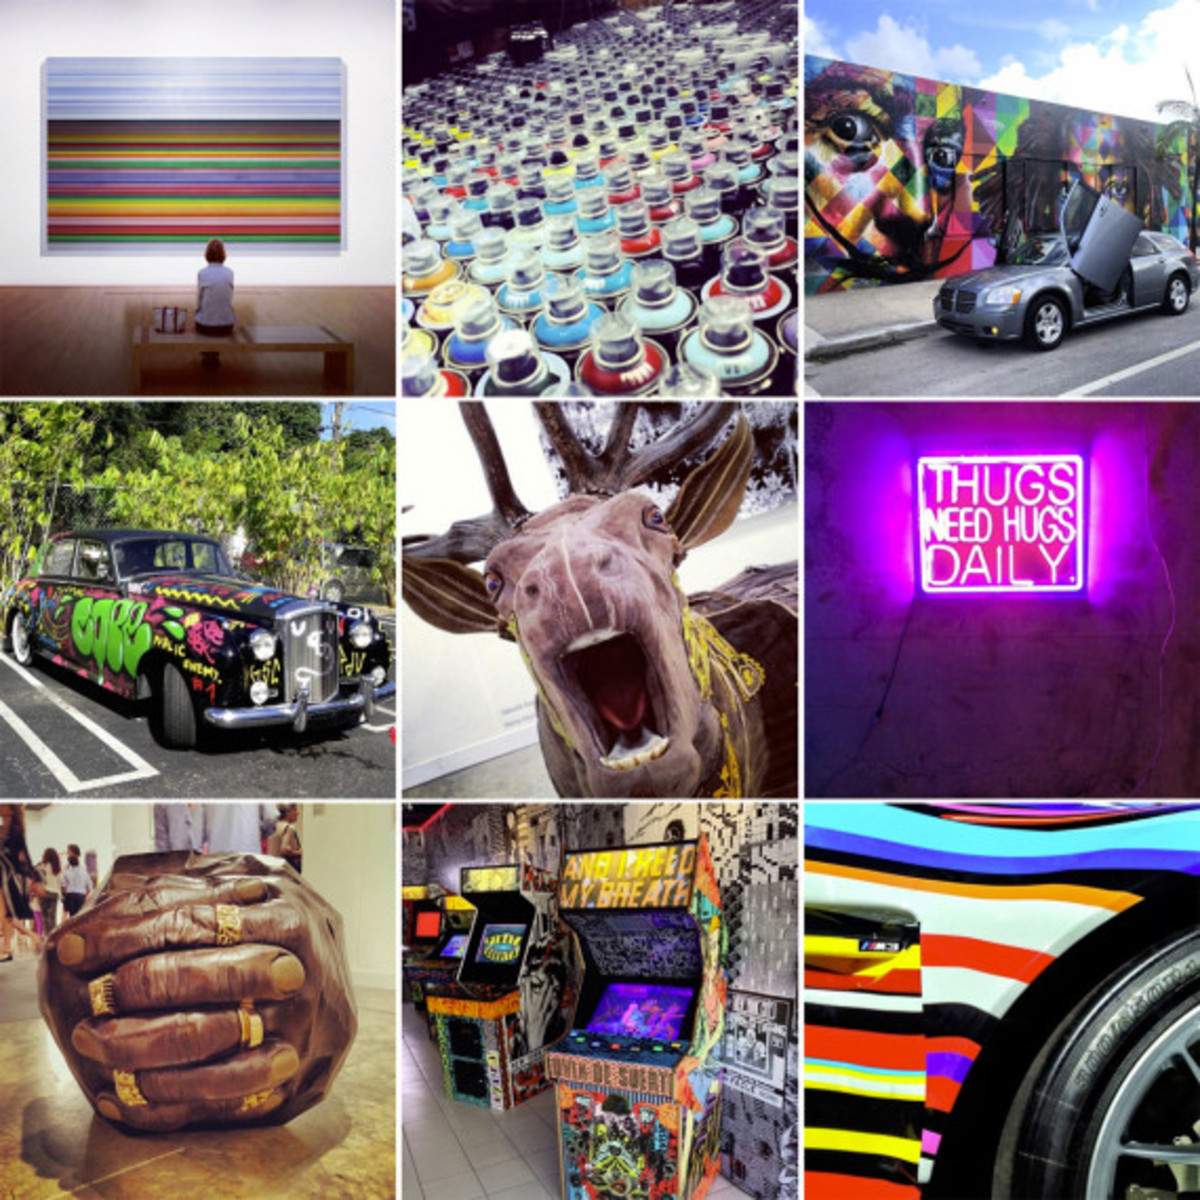 The Top 10 Instagram Photos From Art Basel 2013 - 0